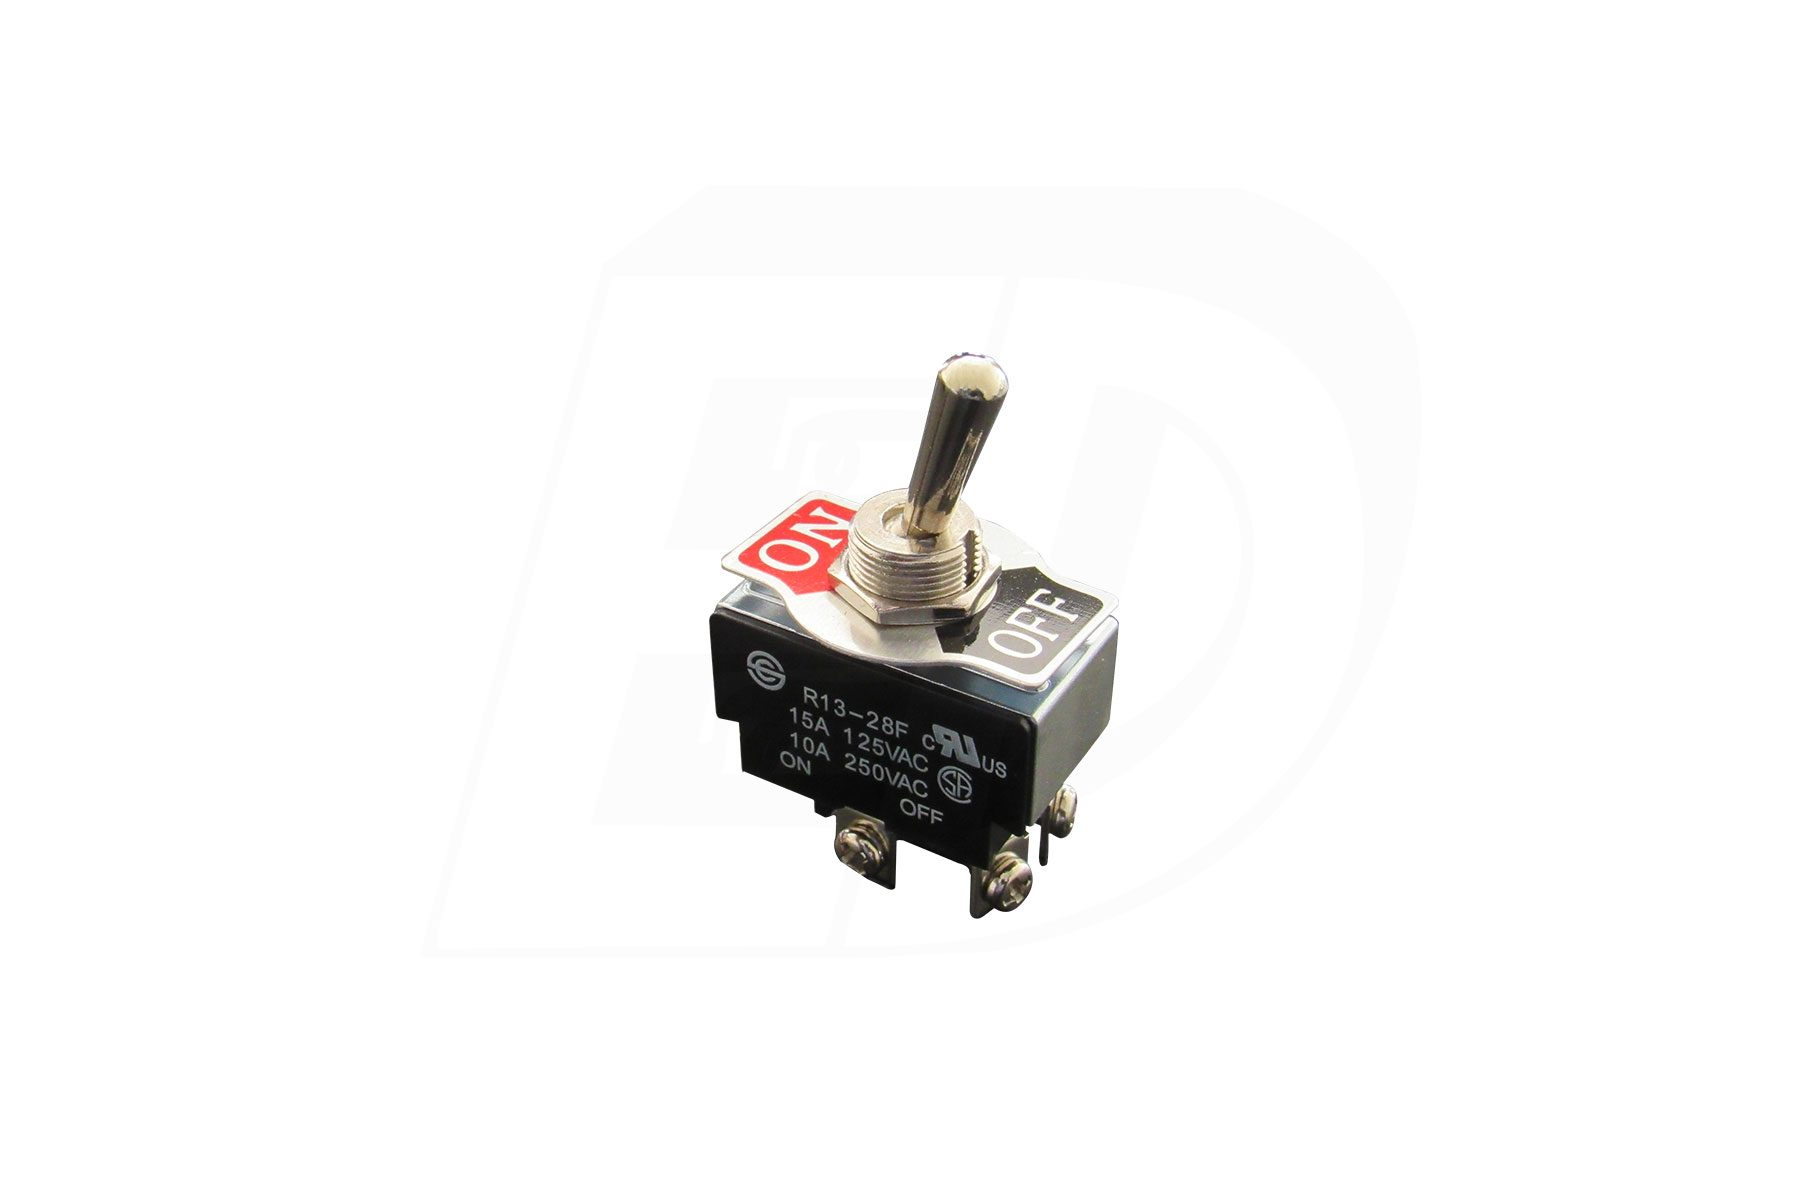 DPST Toggle Lamp Switch